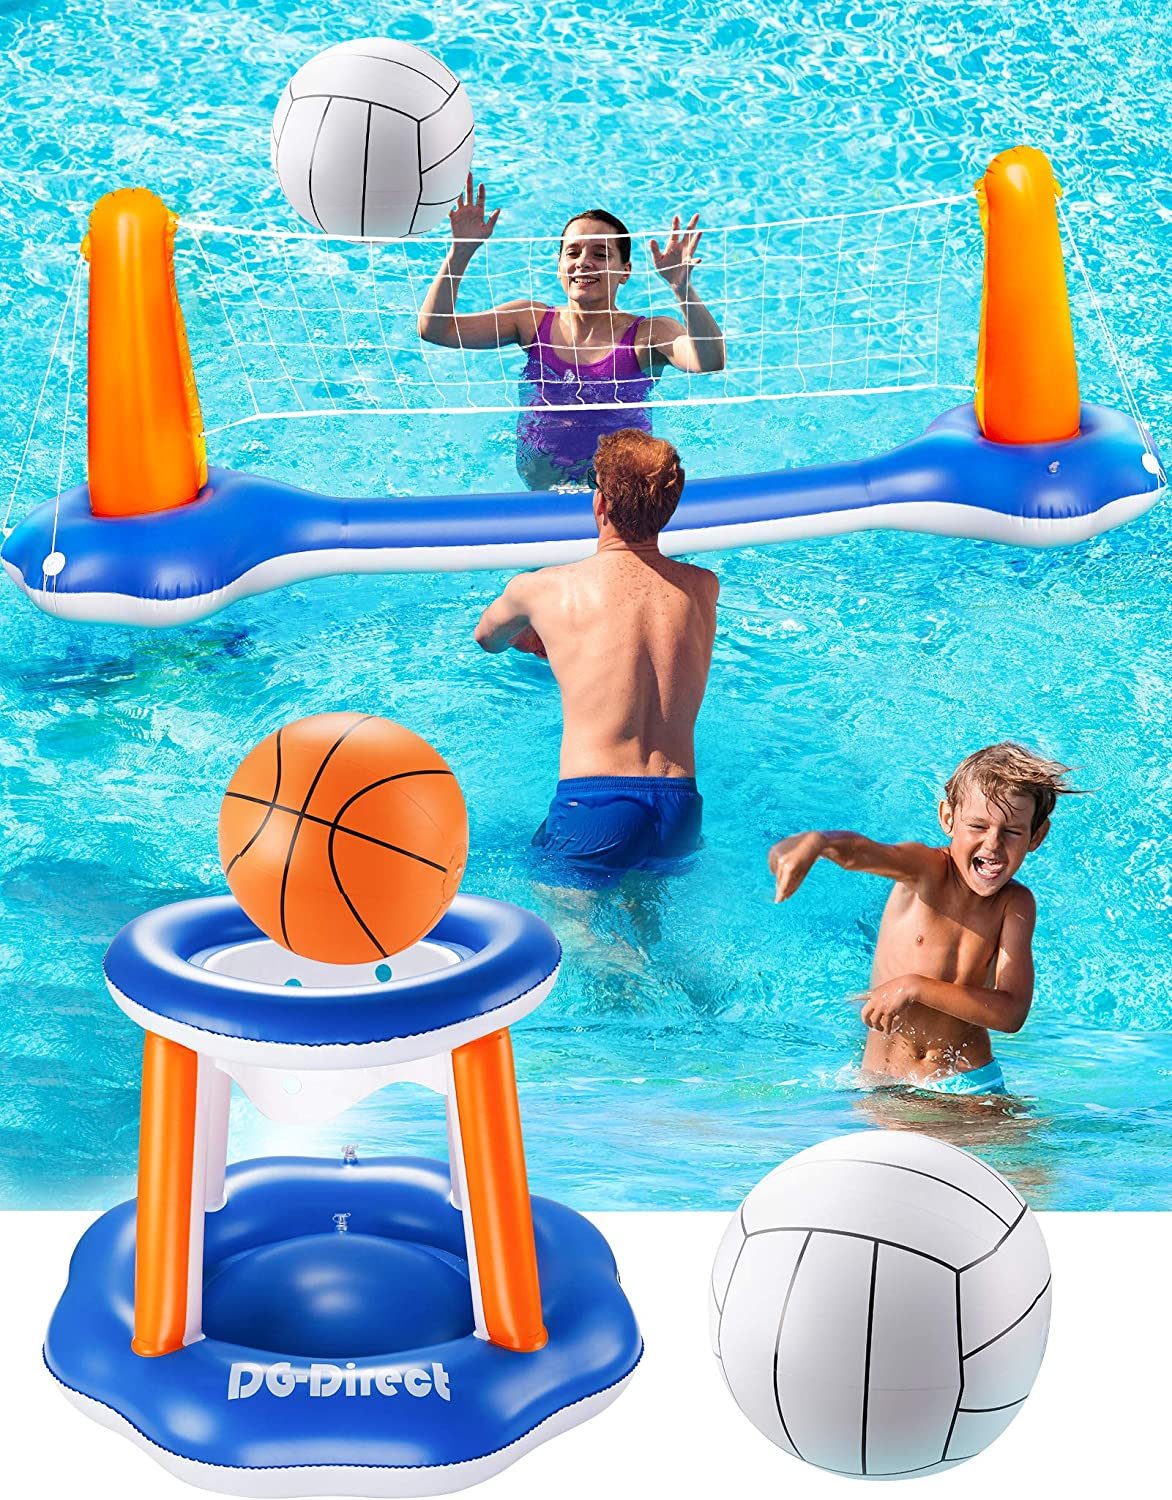 """DG-Direct Inflatable Pool Game Set, 118"""" Inflatable Volleyball Net Basketball Hoop and Balls Set for Kids & Adults, Swimming Game Toys Summer Floats for Water Sports Pool Party-118 x37.4""""x28"""": Toys & Games"""